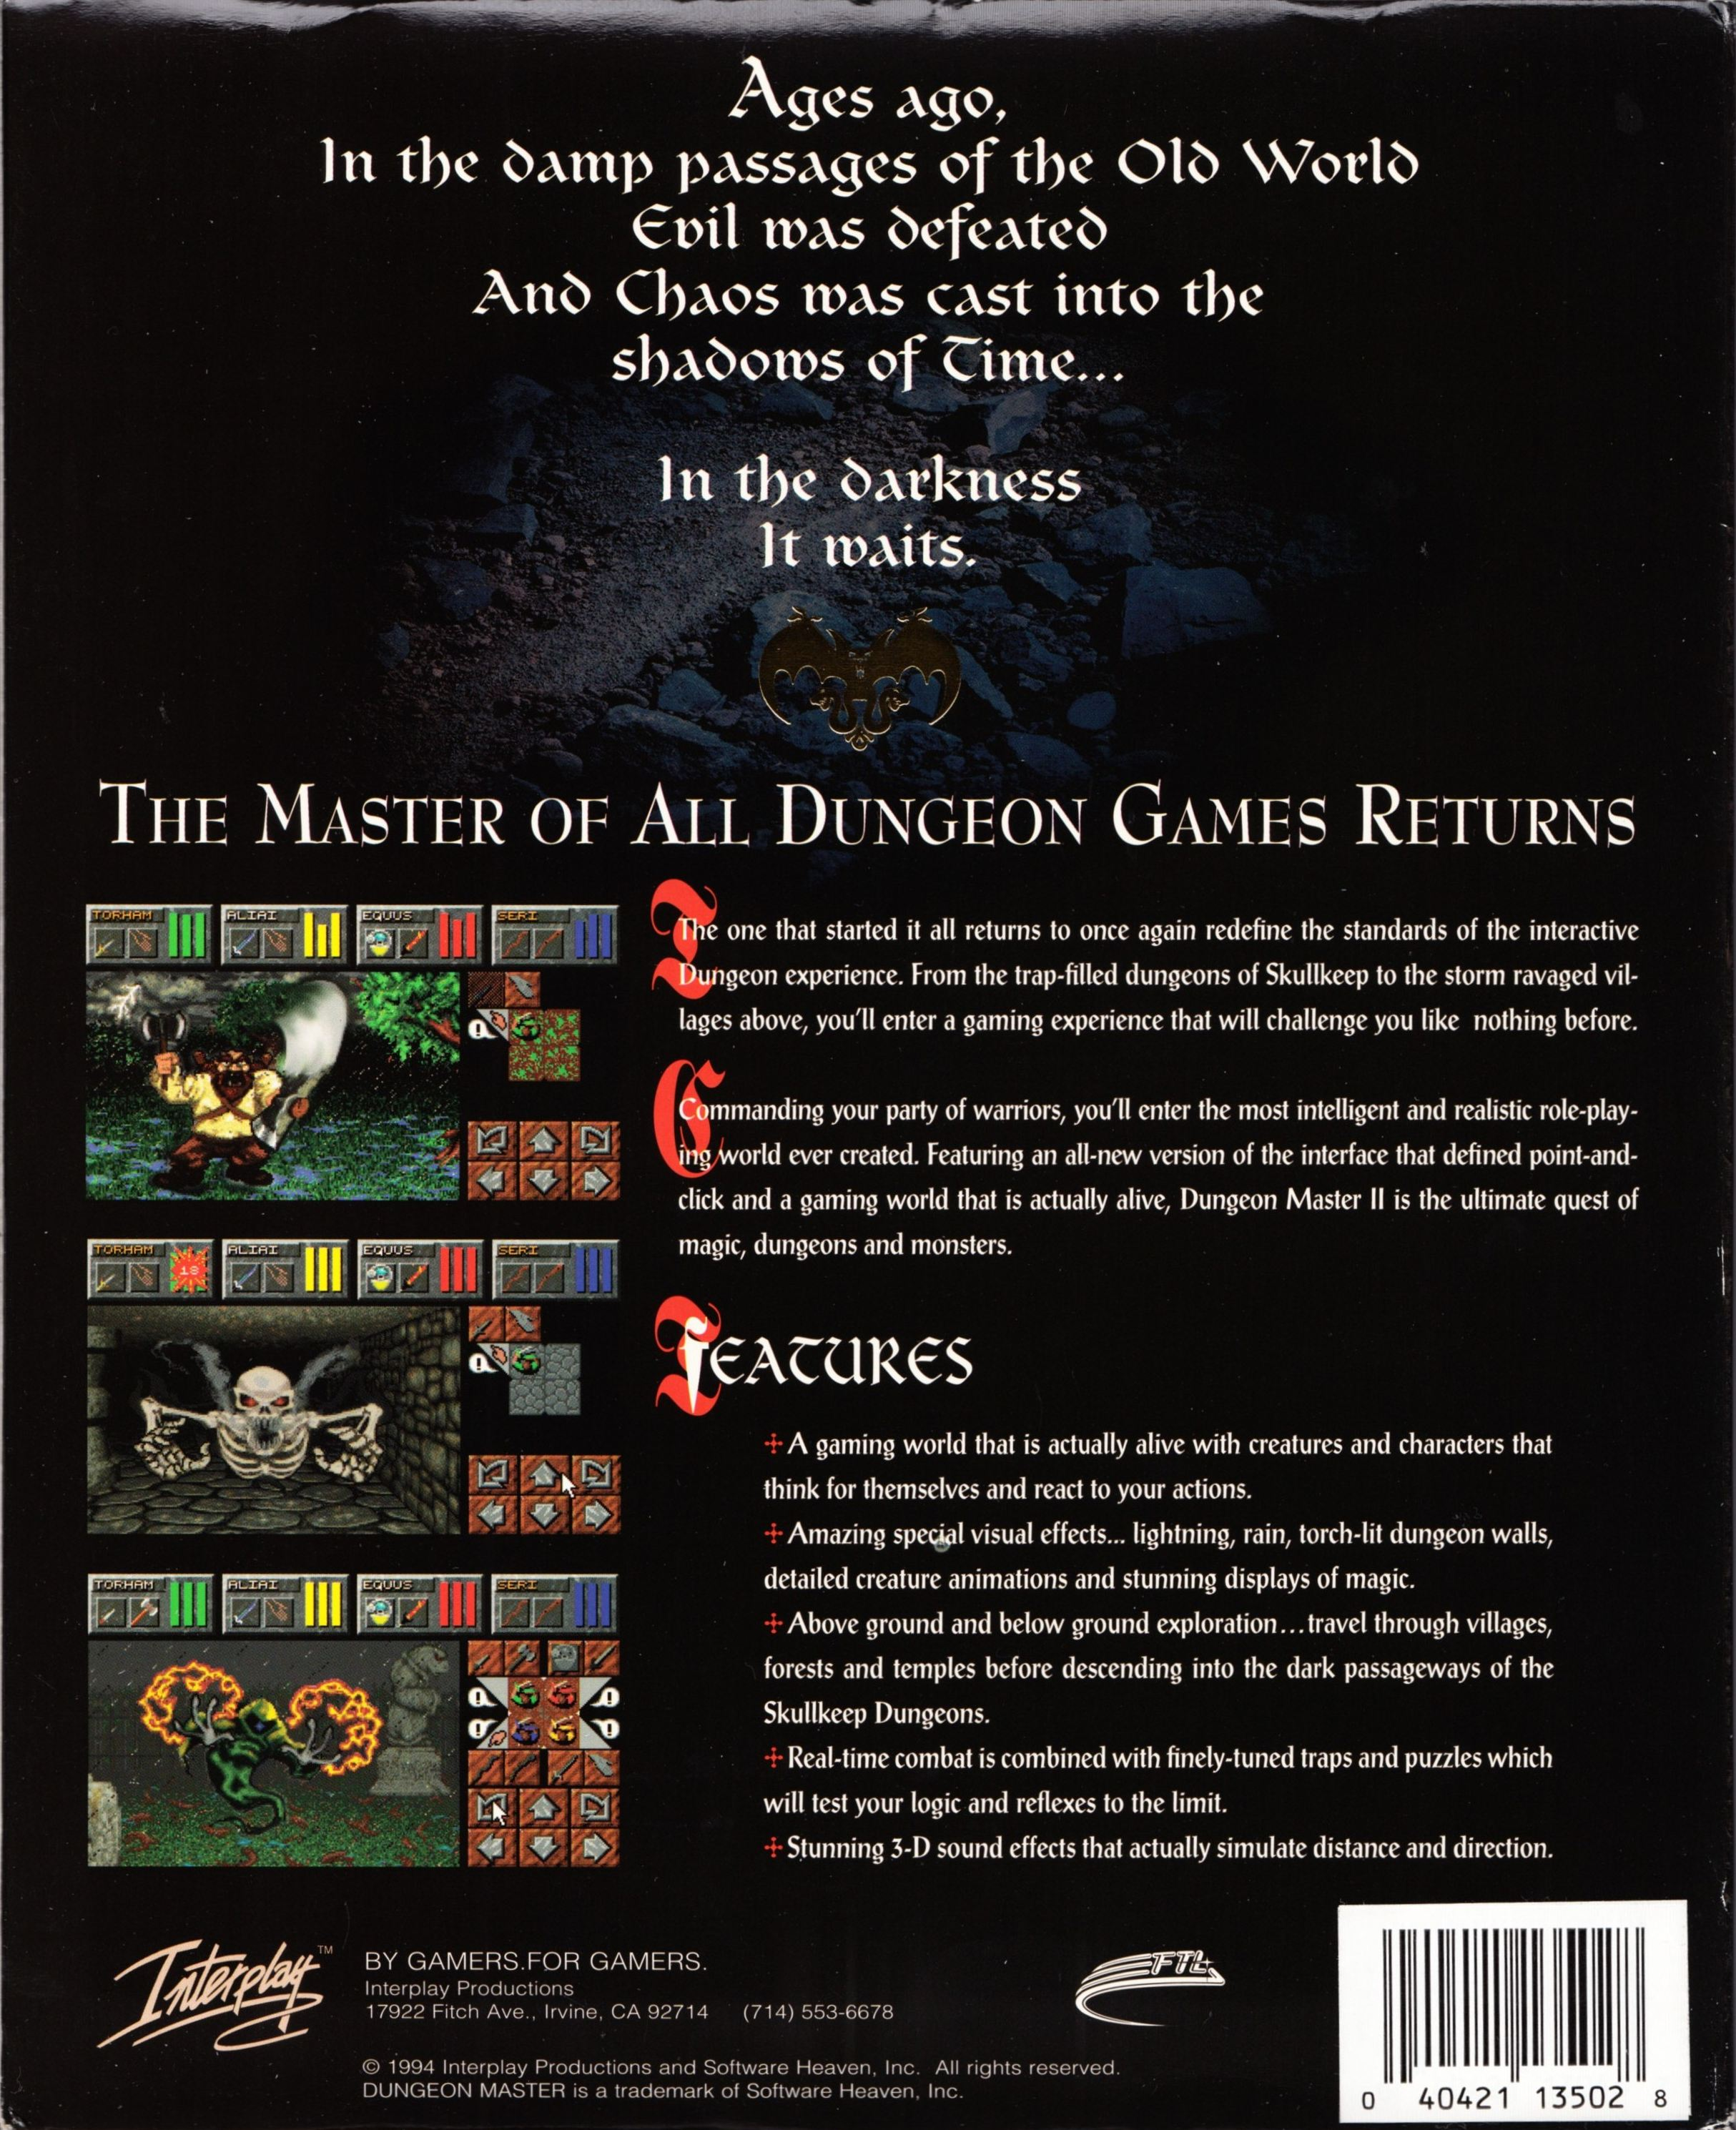 Game - Dungeon Master II - US - PC - Big Box - Box Sleeve - Back - Scan